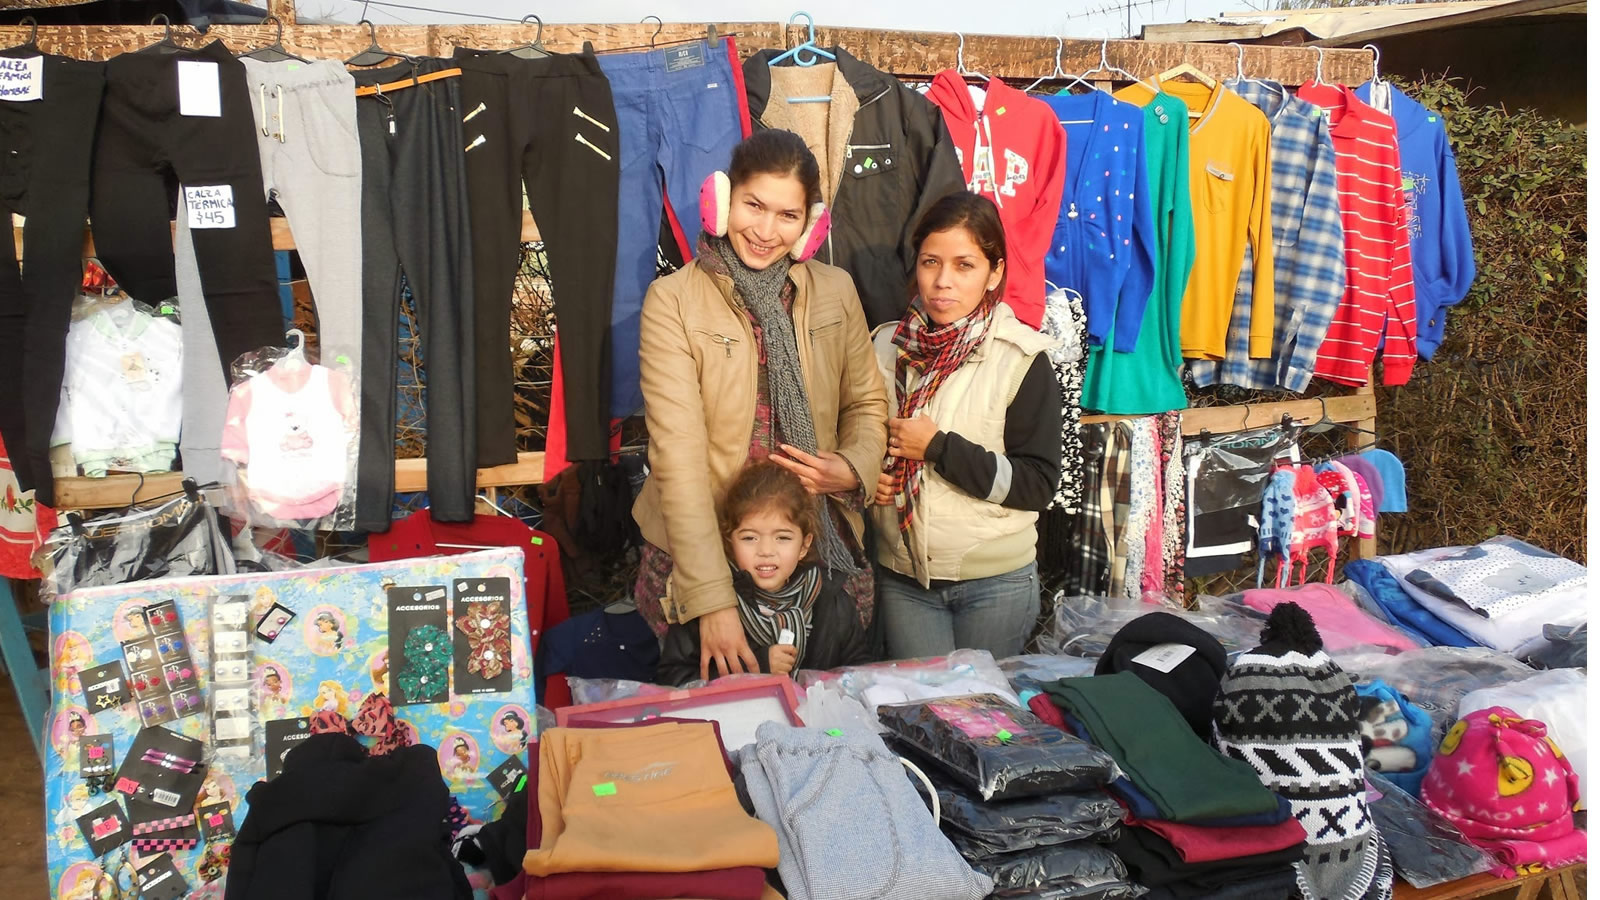 Cold Weather Clothing Stall in Argentina